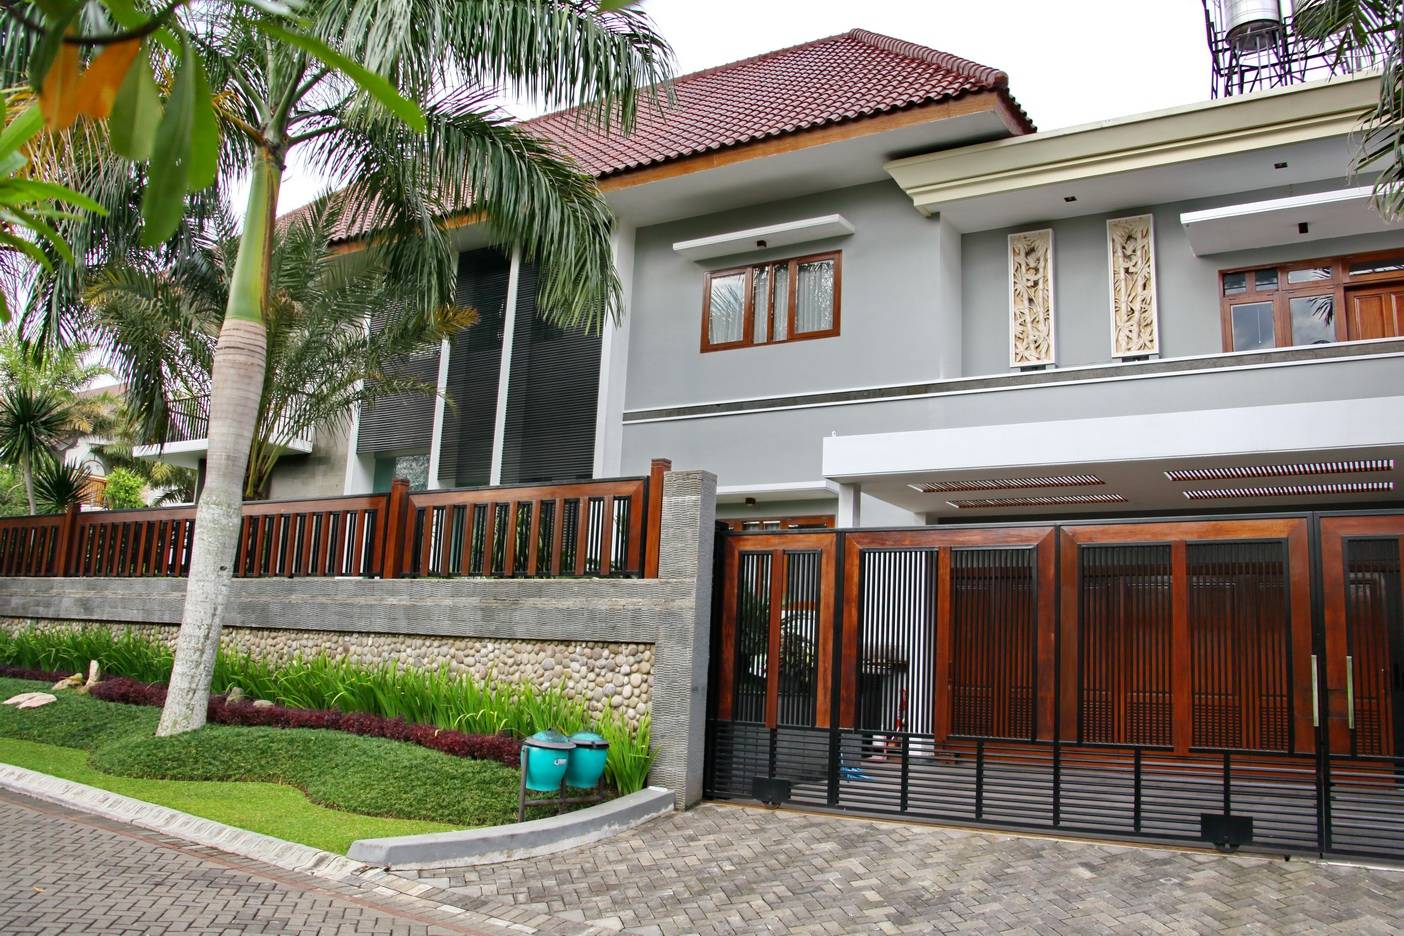 Model Genteng Rumah Modern Style Houses With Kia And Royal Roof Model Rumah Modern